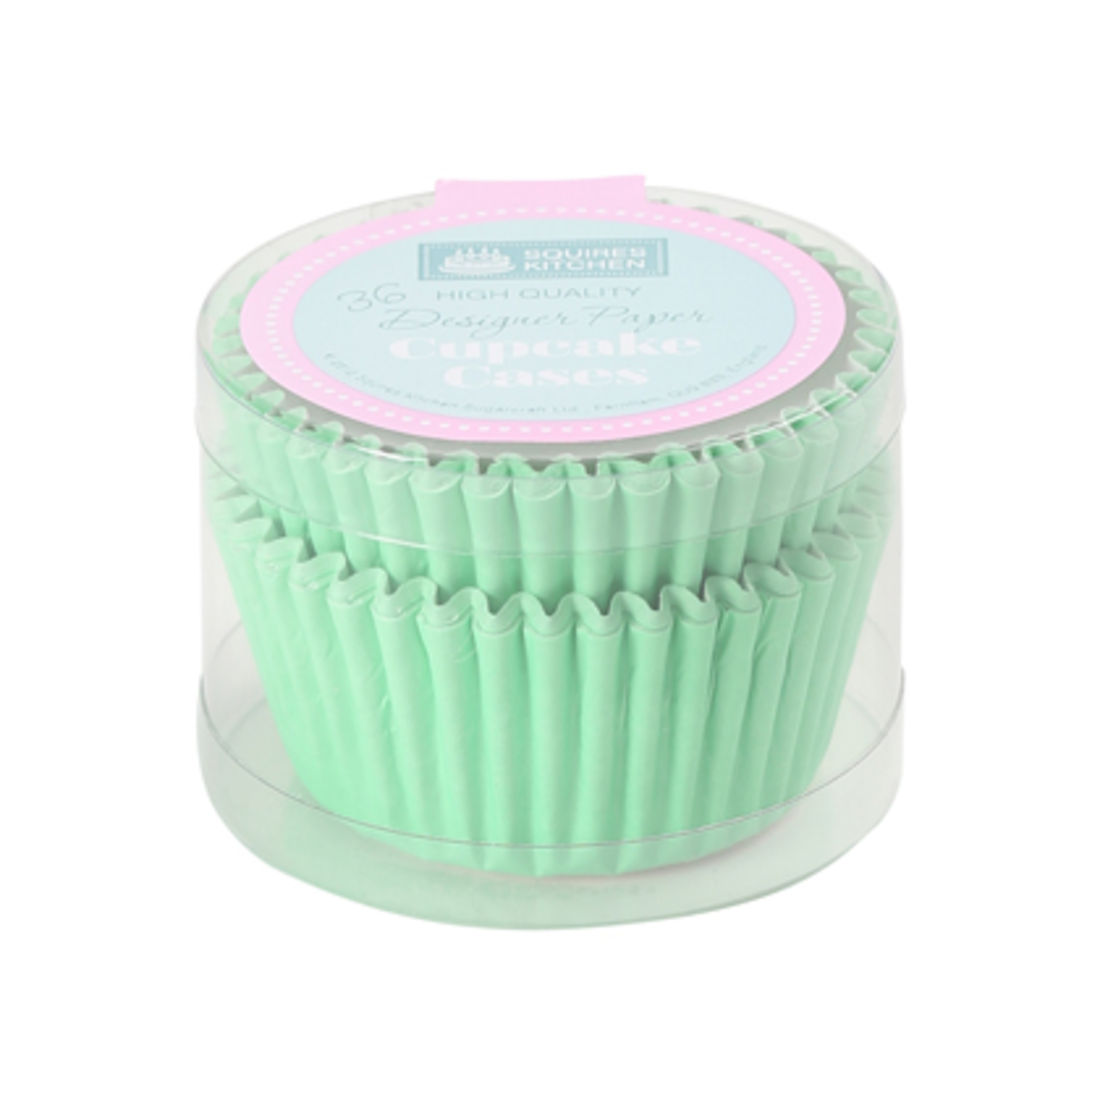 2001628 SK Cupcake Cases Colour Block Pack Of 36 Pastel Green